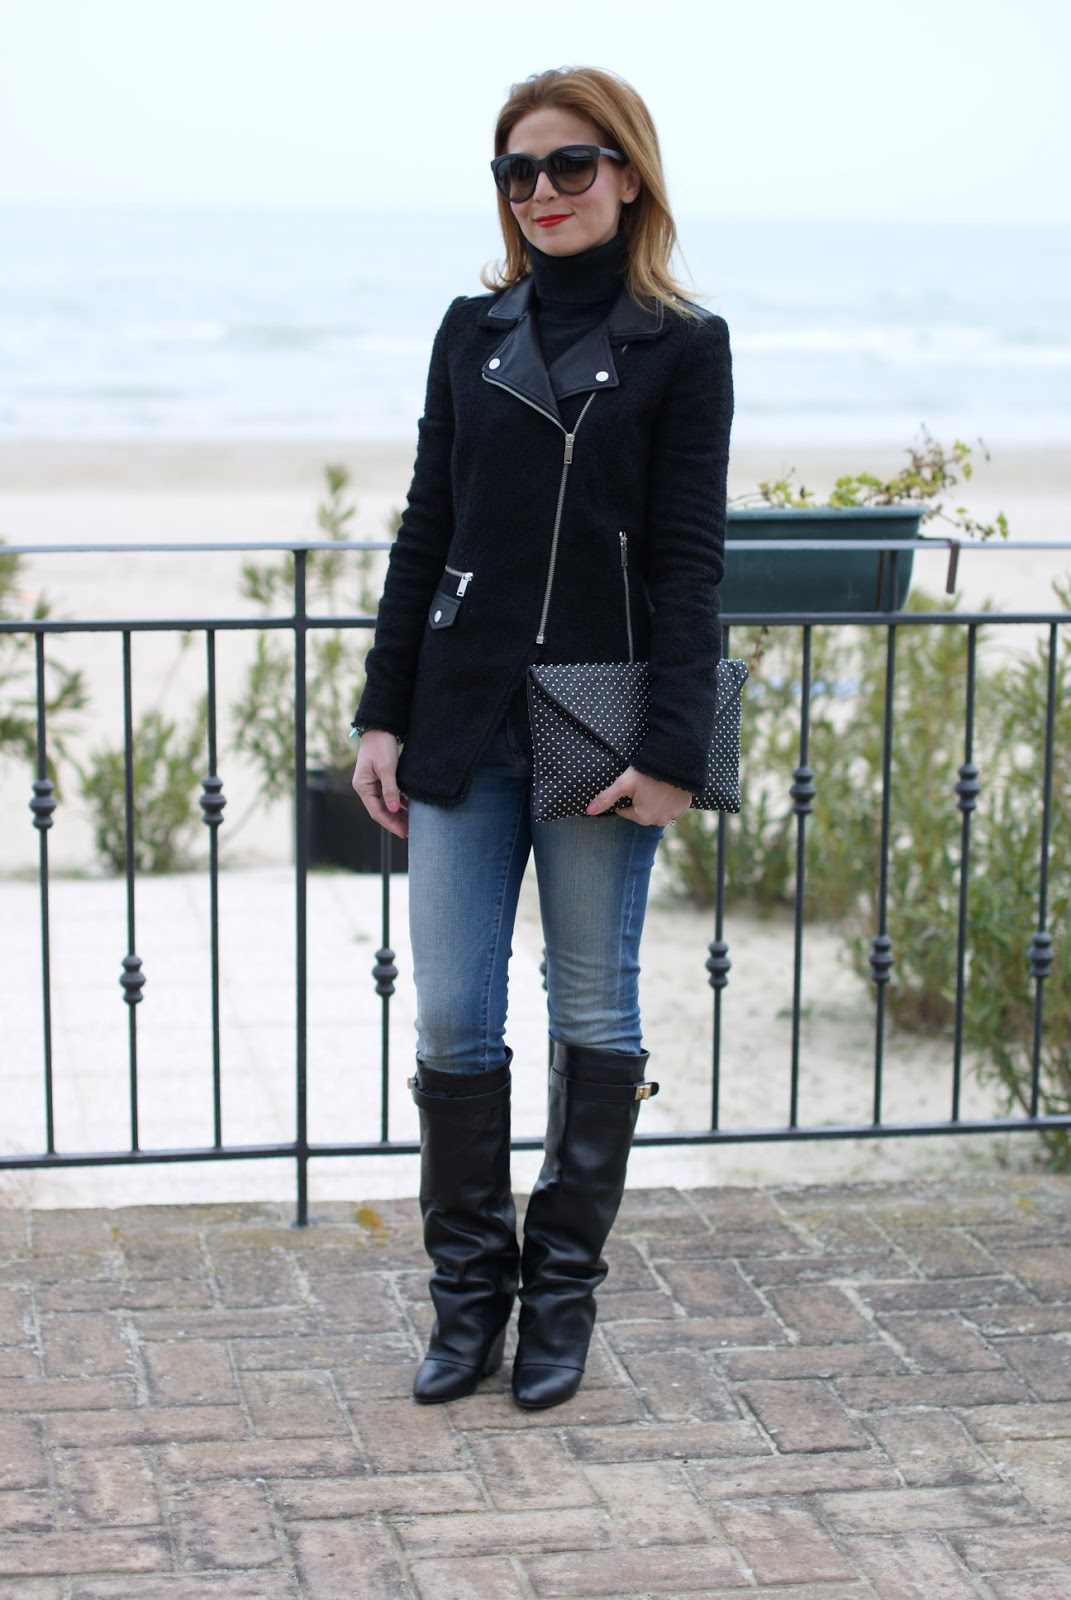 foto Lita Boots Outfits – 17 Ways to Wear Lita Shoes Fashionably